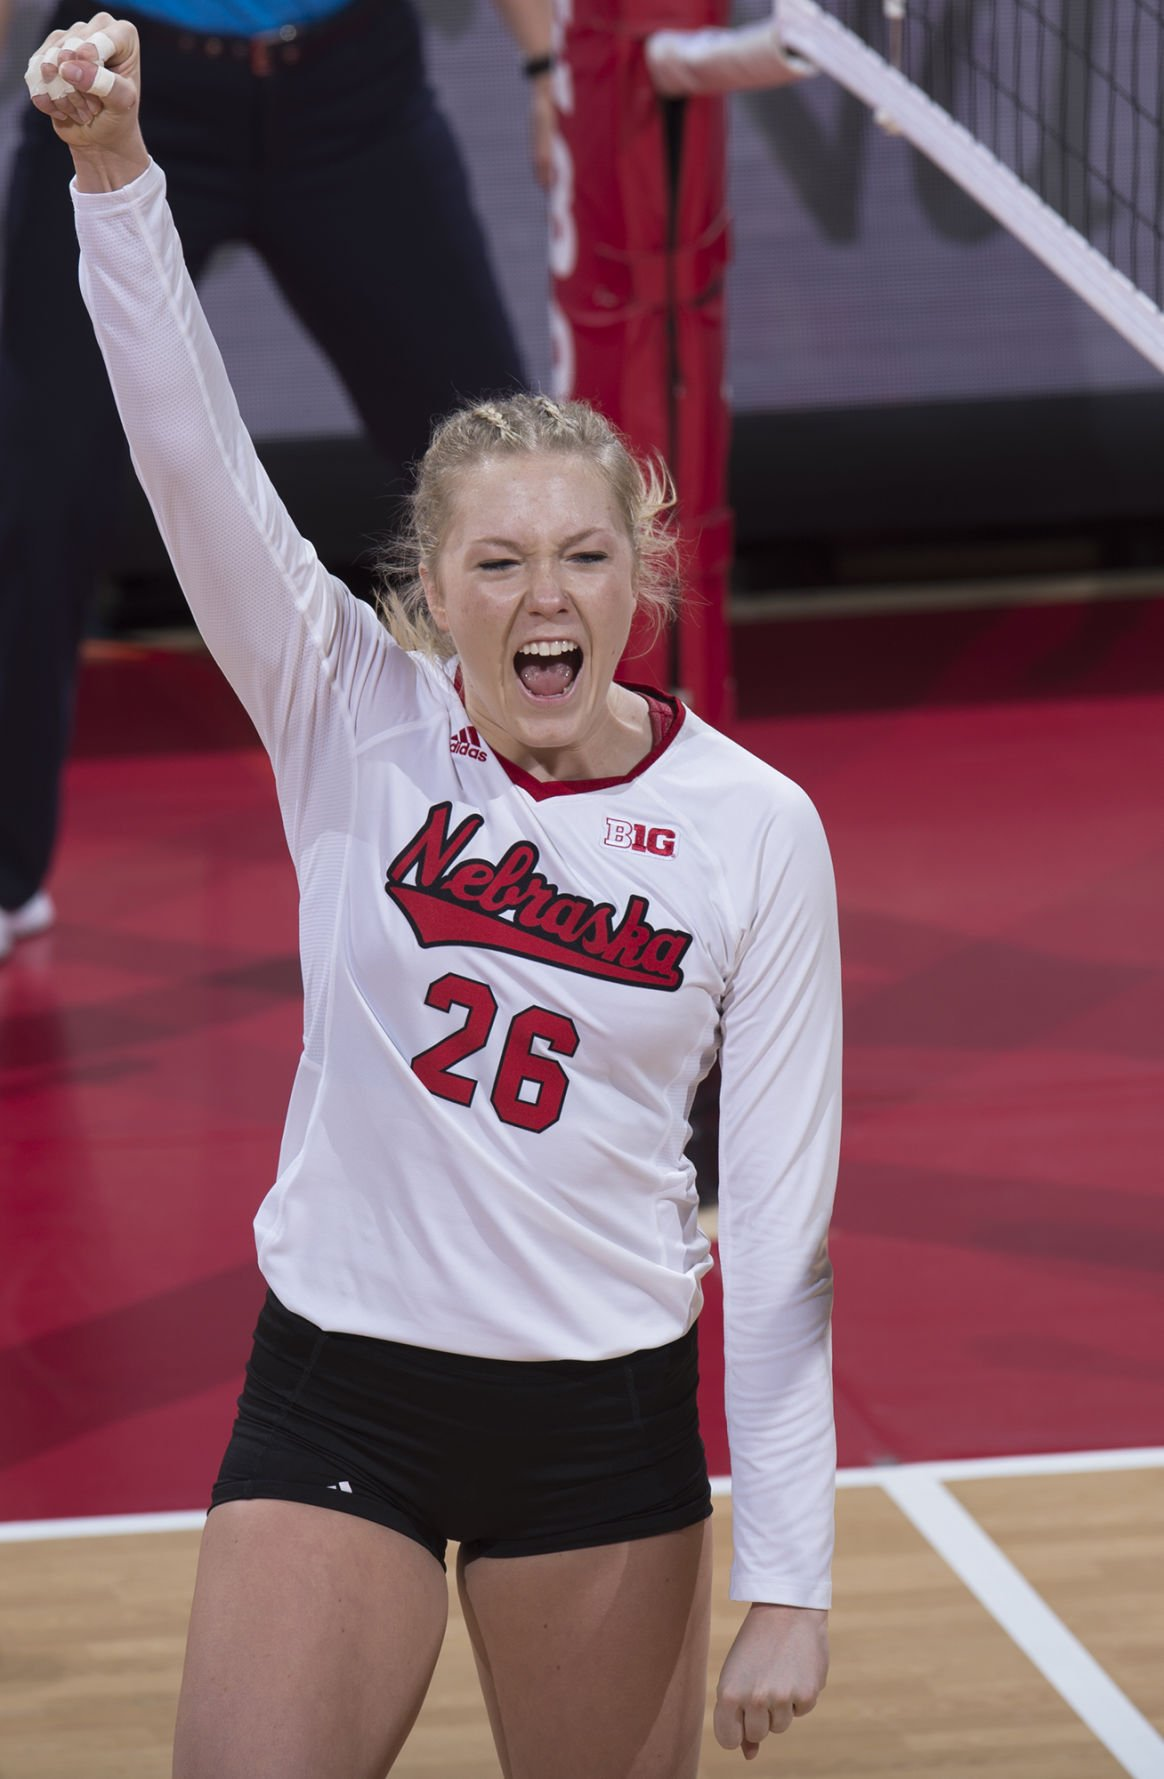 Nebraska Volleyball Team Has Remained Focused While Playing Teams At The Bottom Of The Standings Volleyball Journalstar Com